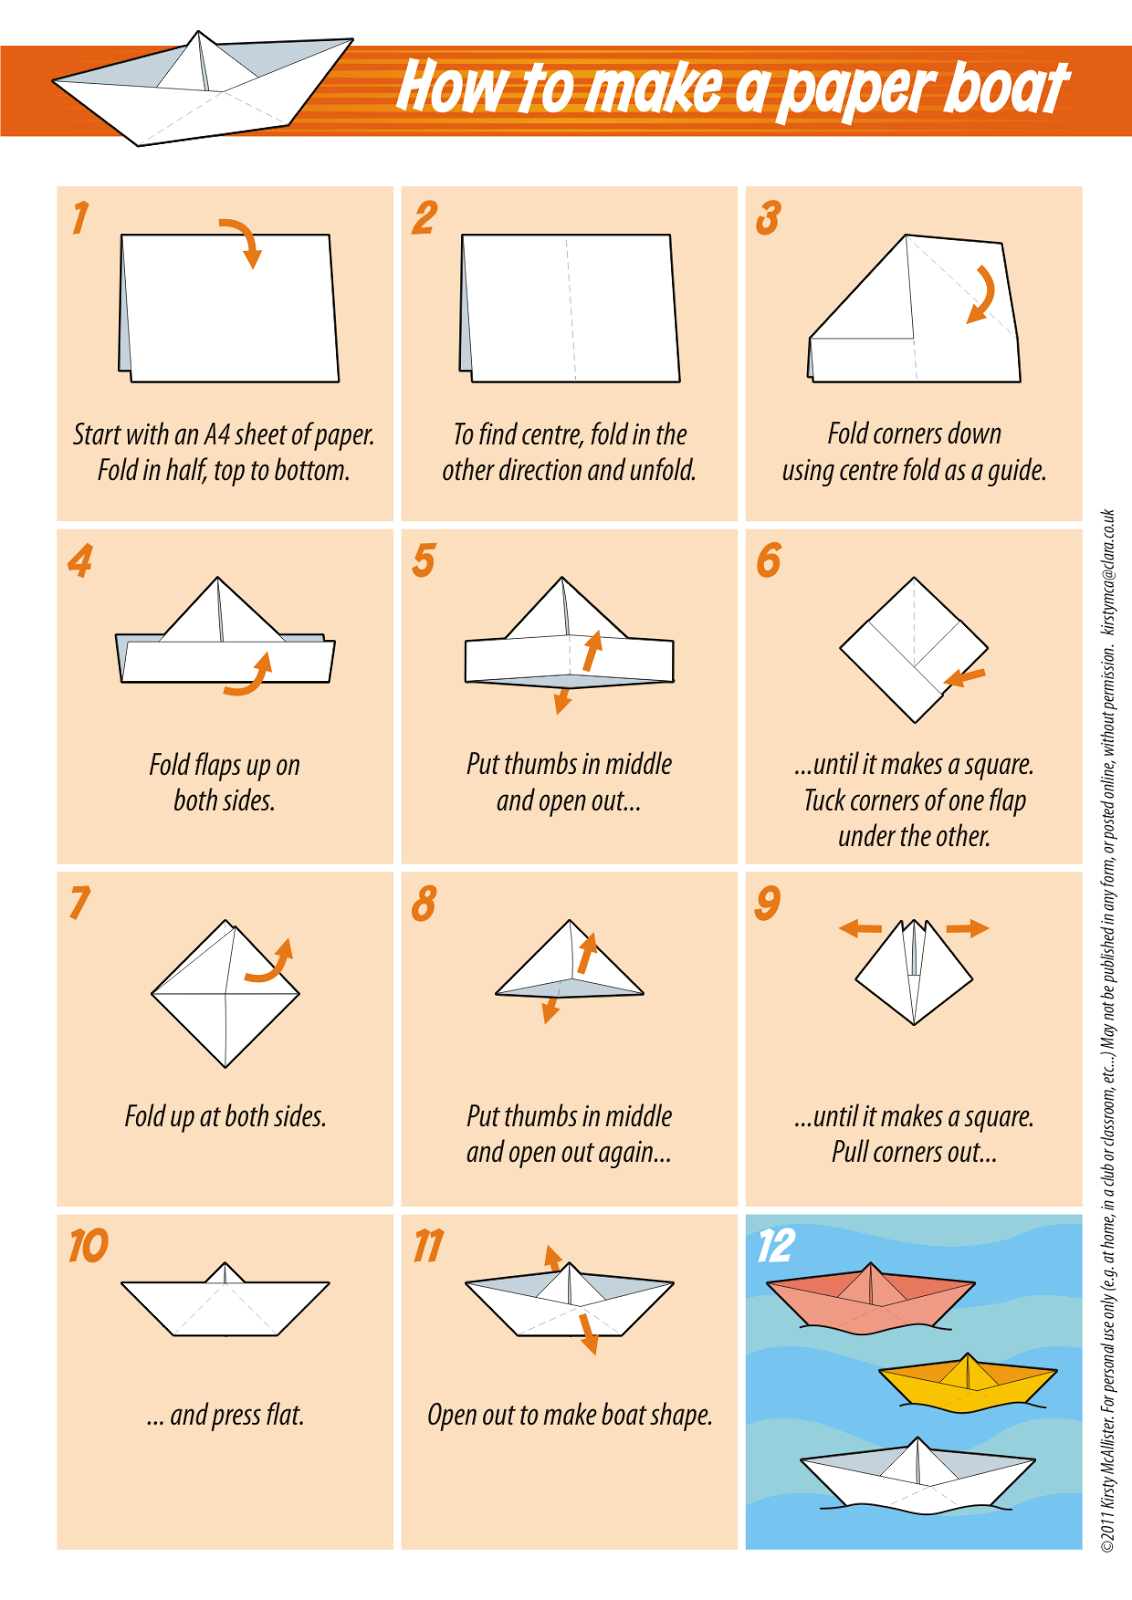 Make paper boat instructions